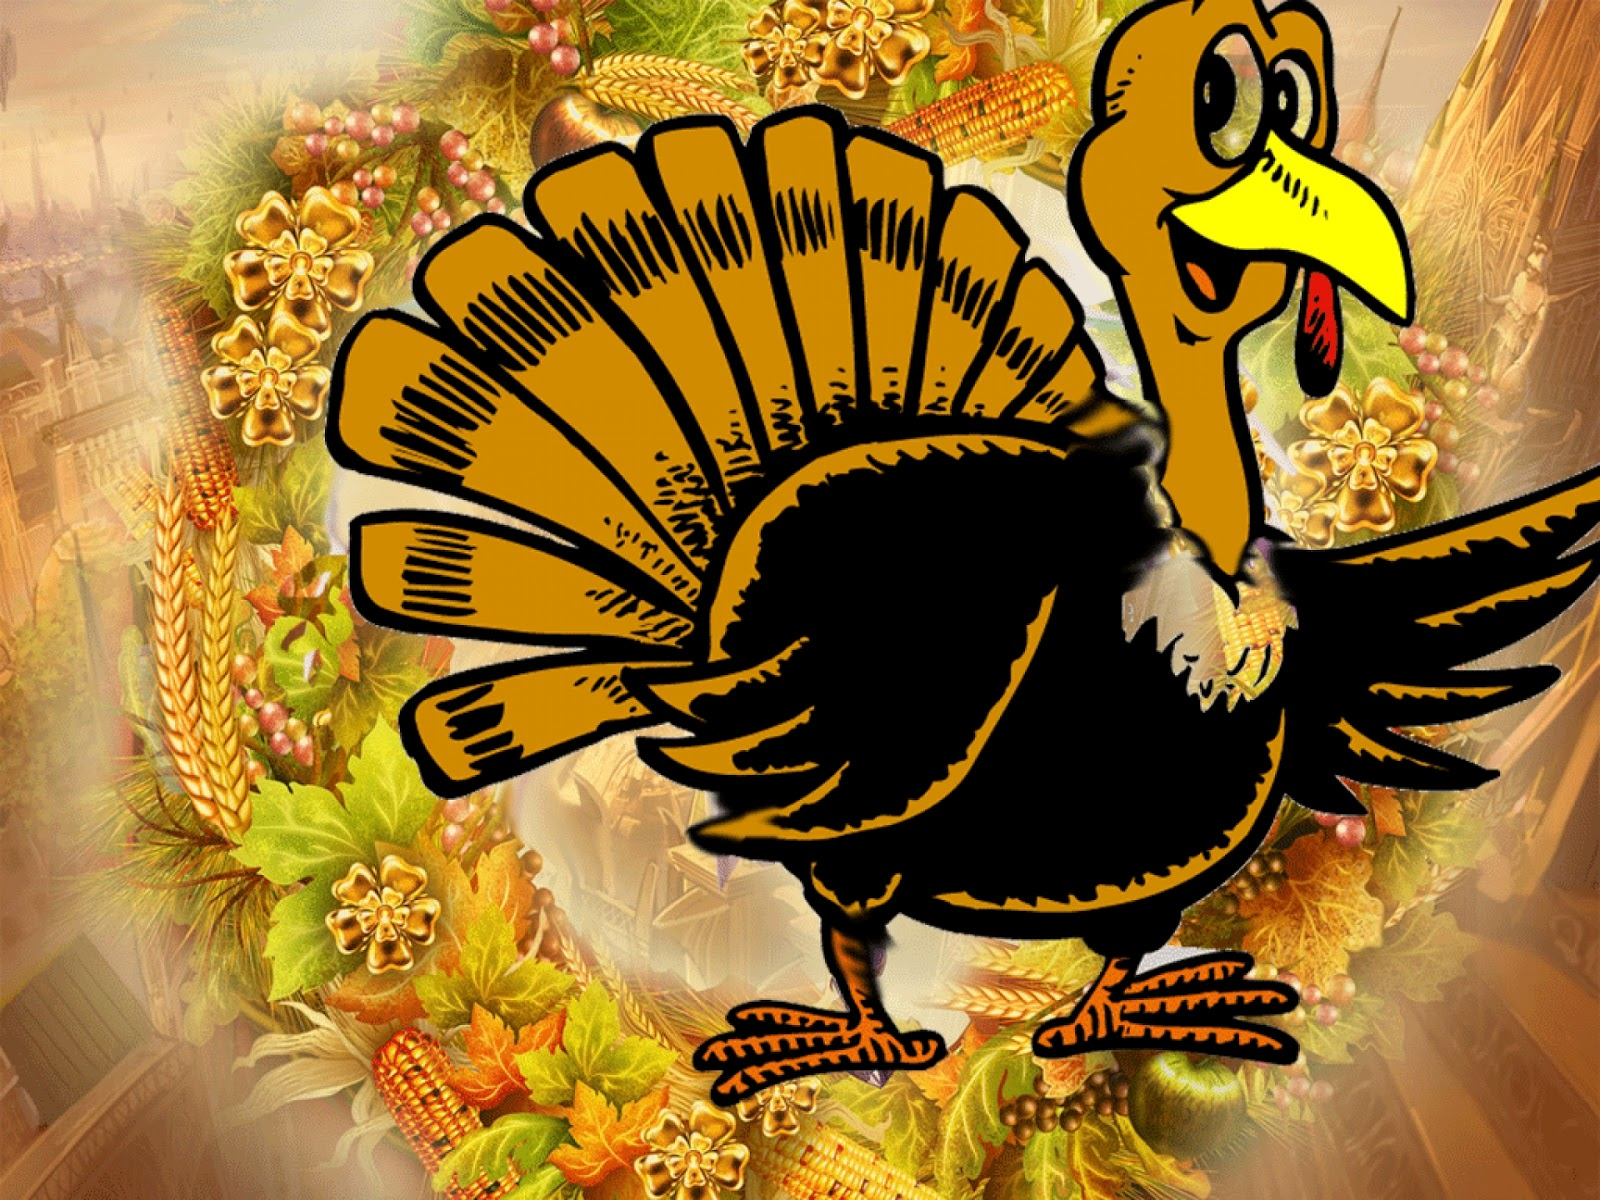 3D Thanksgiving Images HD 3D Thanksgiving HD Backgrounds